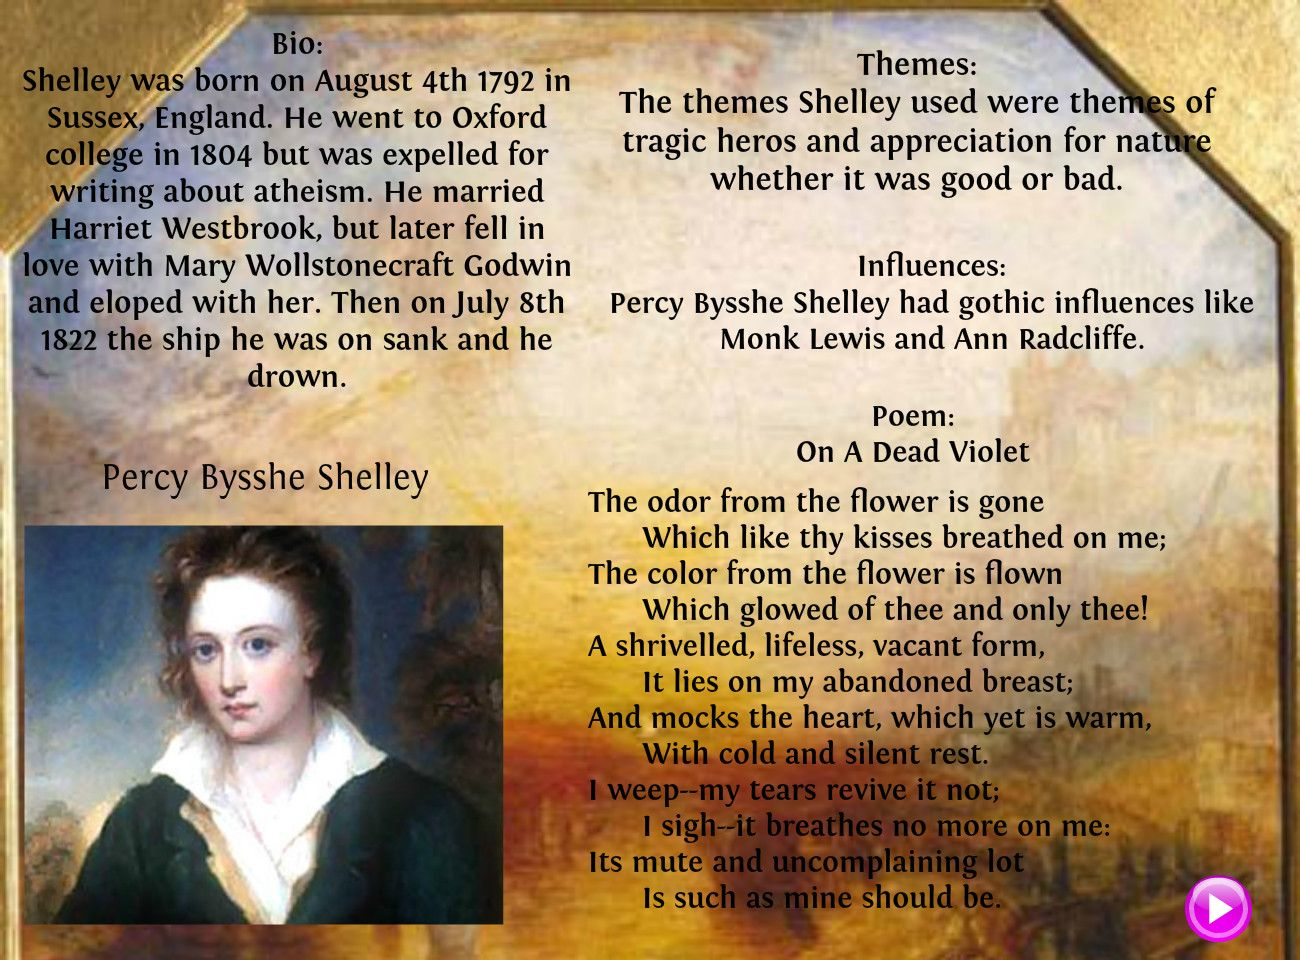 Percy bysshe shelley quotes quotesgram - Percy Bysshe Shelley Poems Google Search